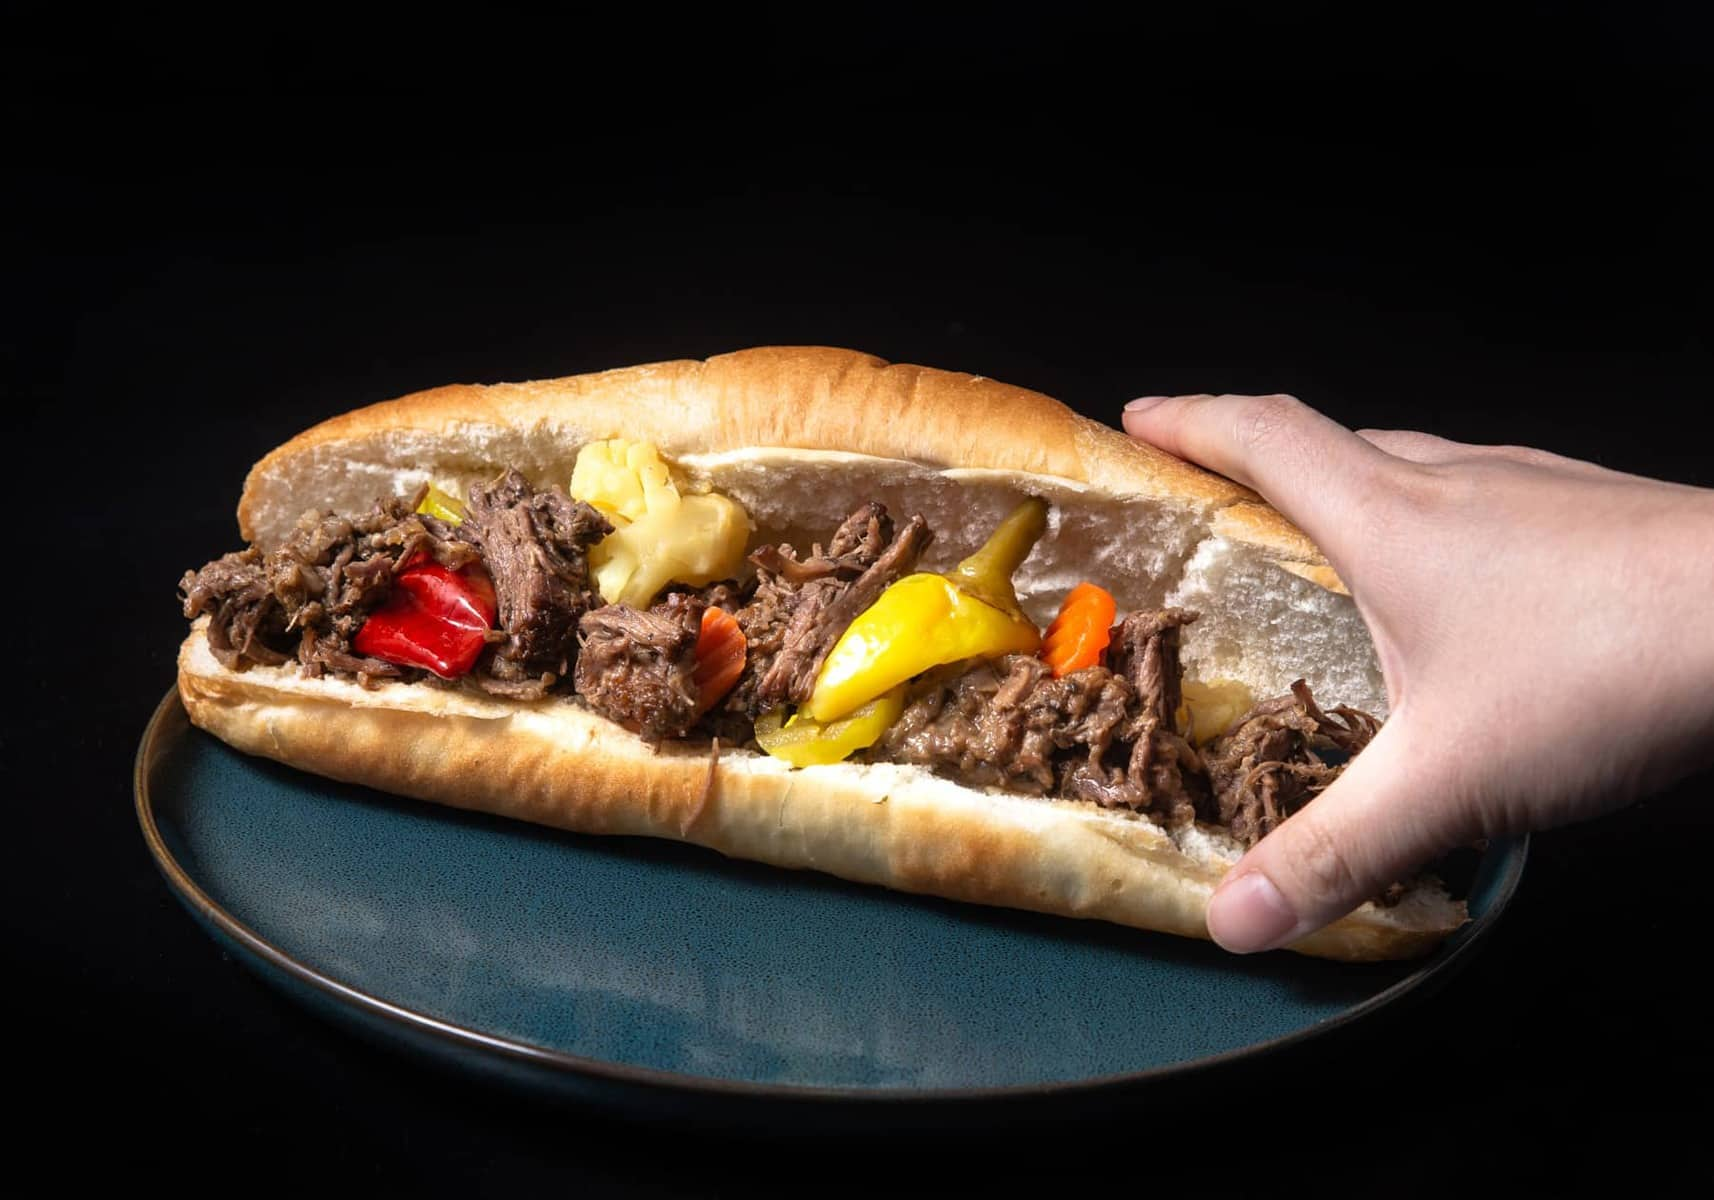 Instant Pot Italian Beef | Pressure Cooker Italian Beef | Instapot Italian Beef Sandwich | Italian Beef Recipe | Instant Pot Beef Recipes | Instant Pot Recipes | Pressure Cooker Recipes